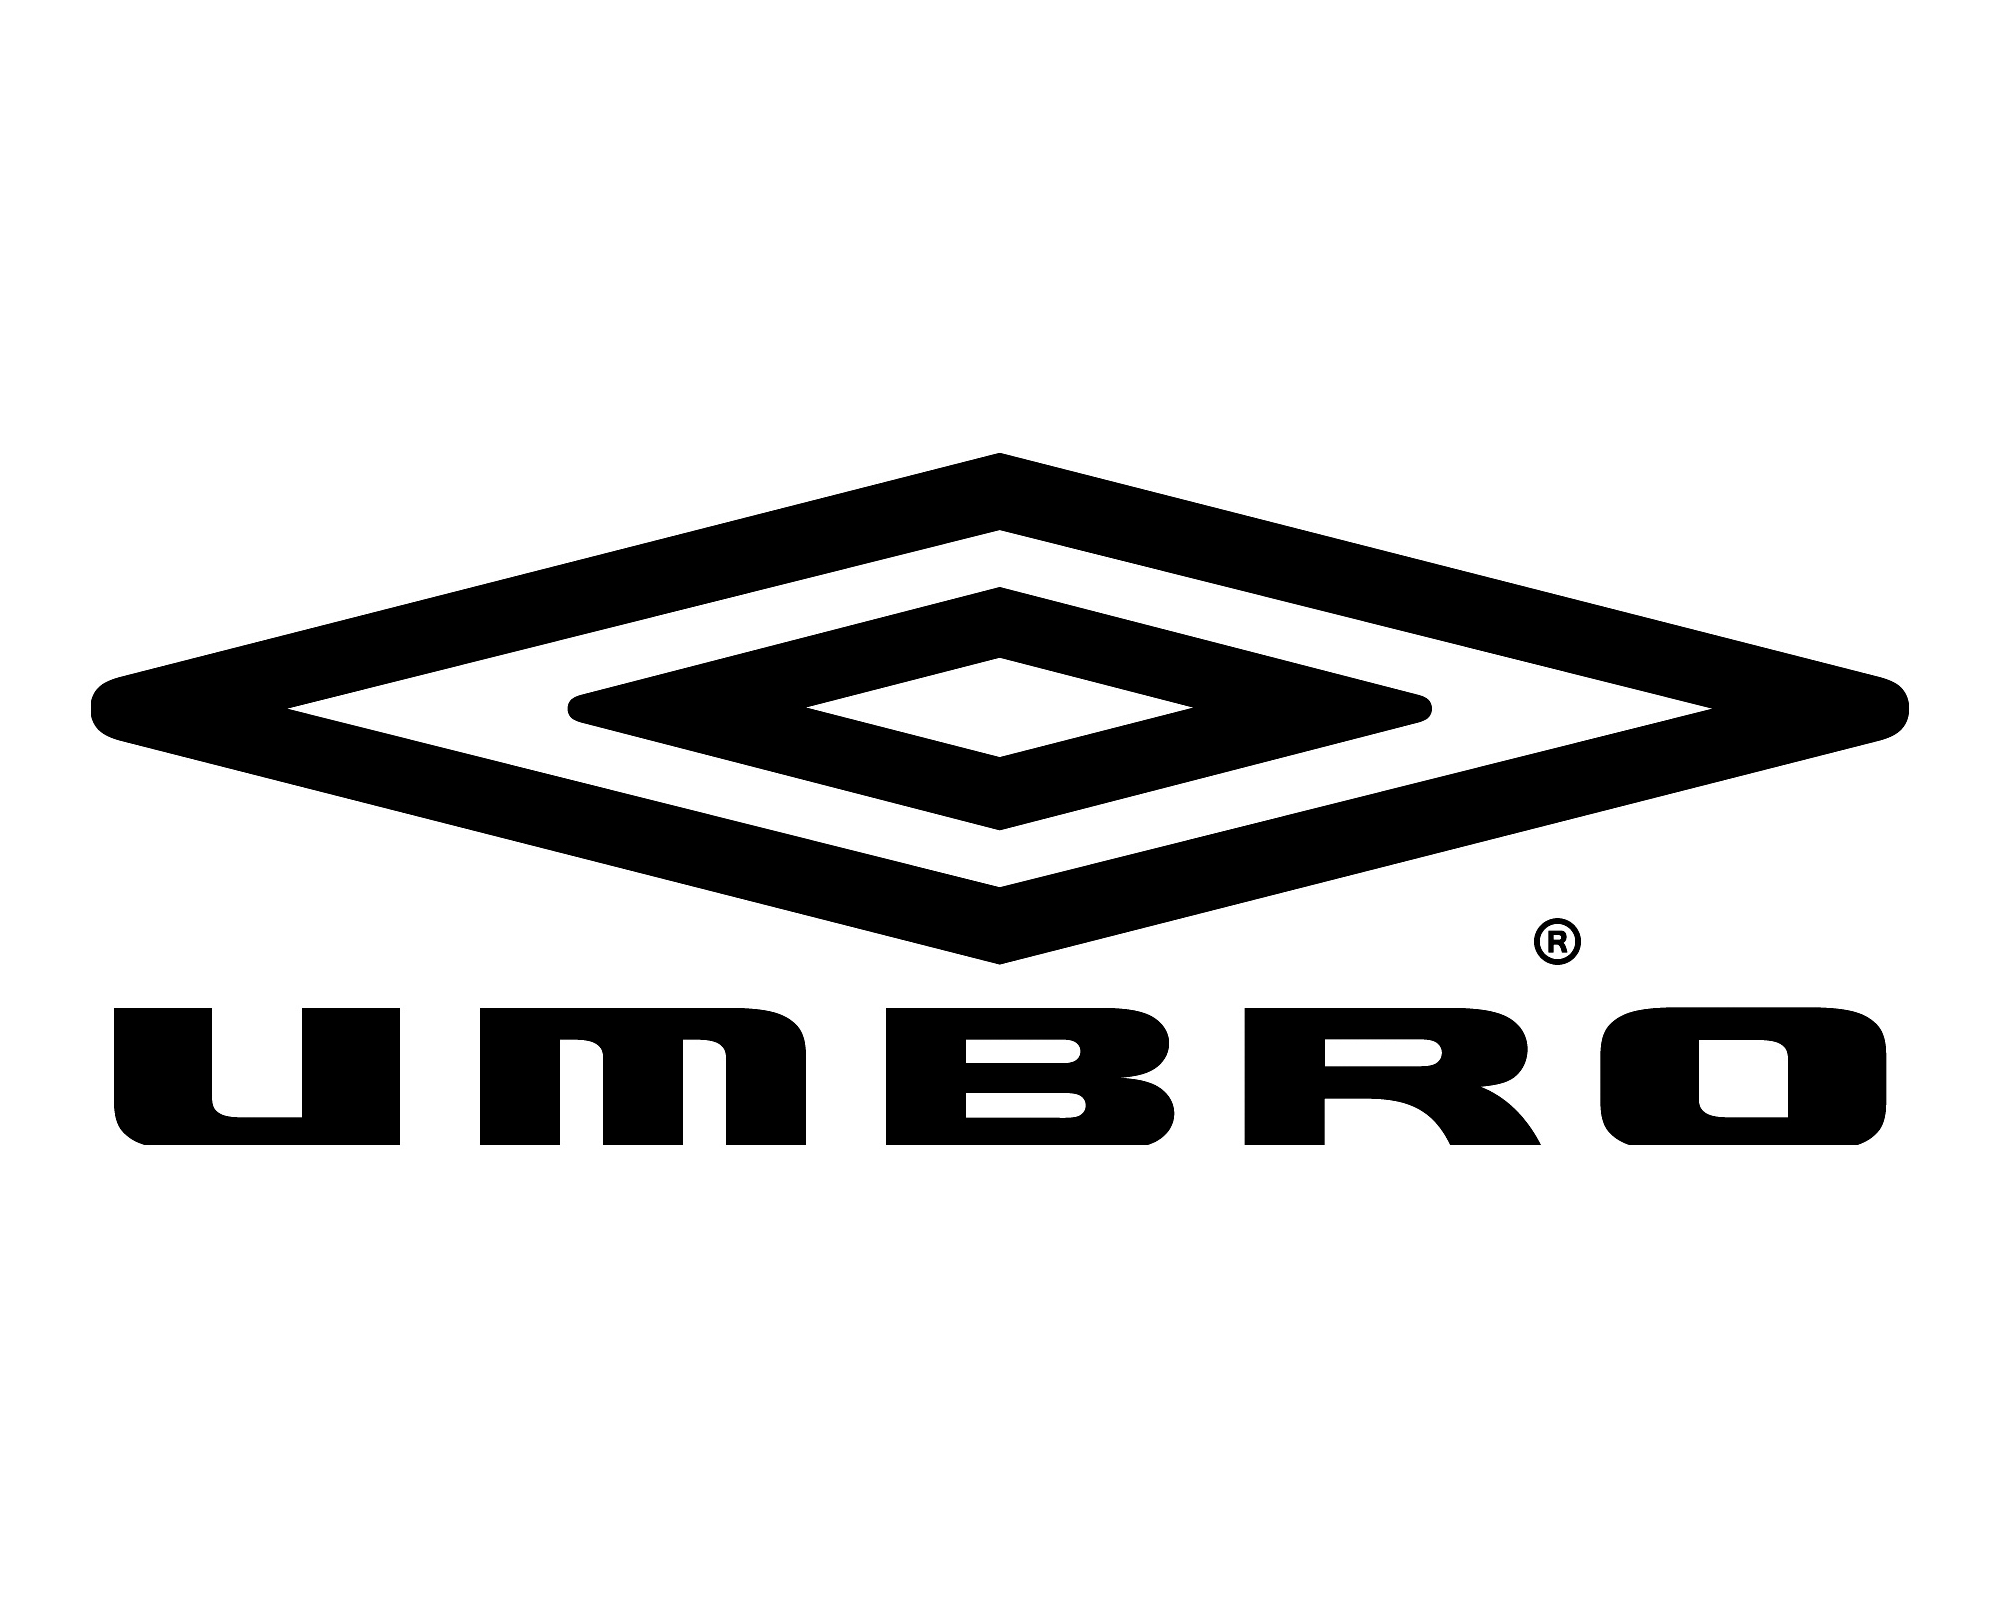 Under Armor Logo >> UMBRO - JapaneseClass.jp